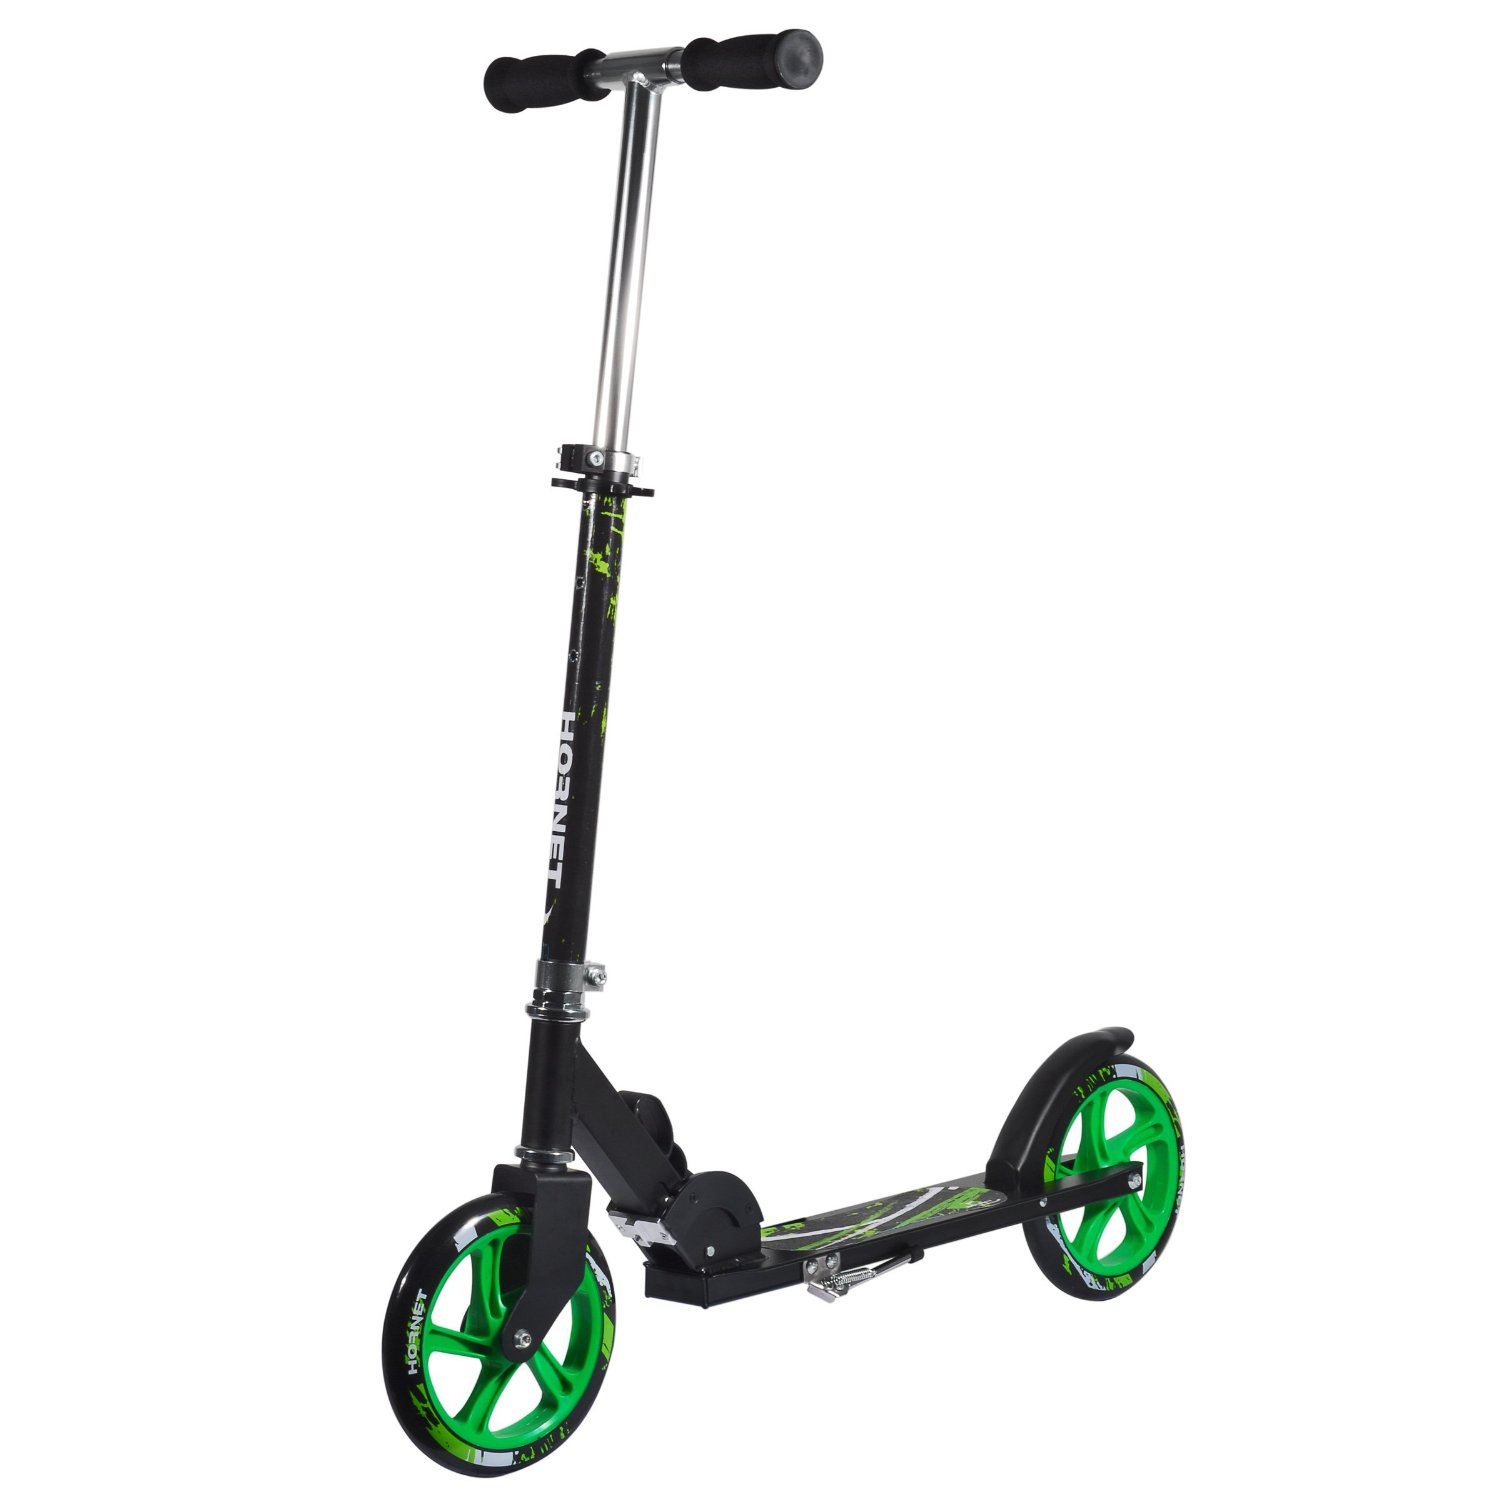 Hudora Hornet Scooter with Neon Green Wheels 205 mm